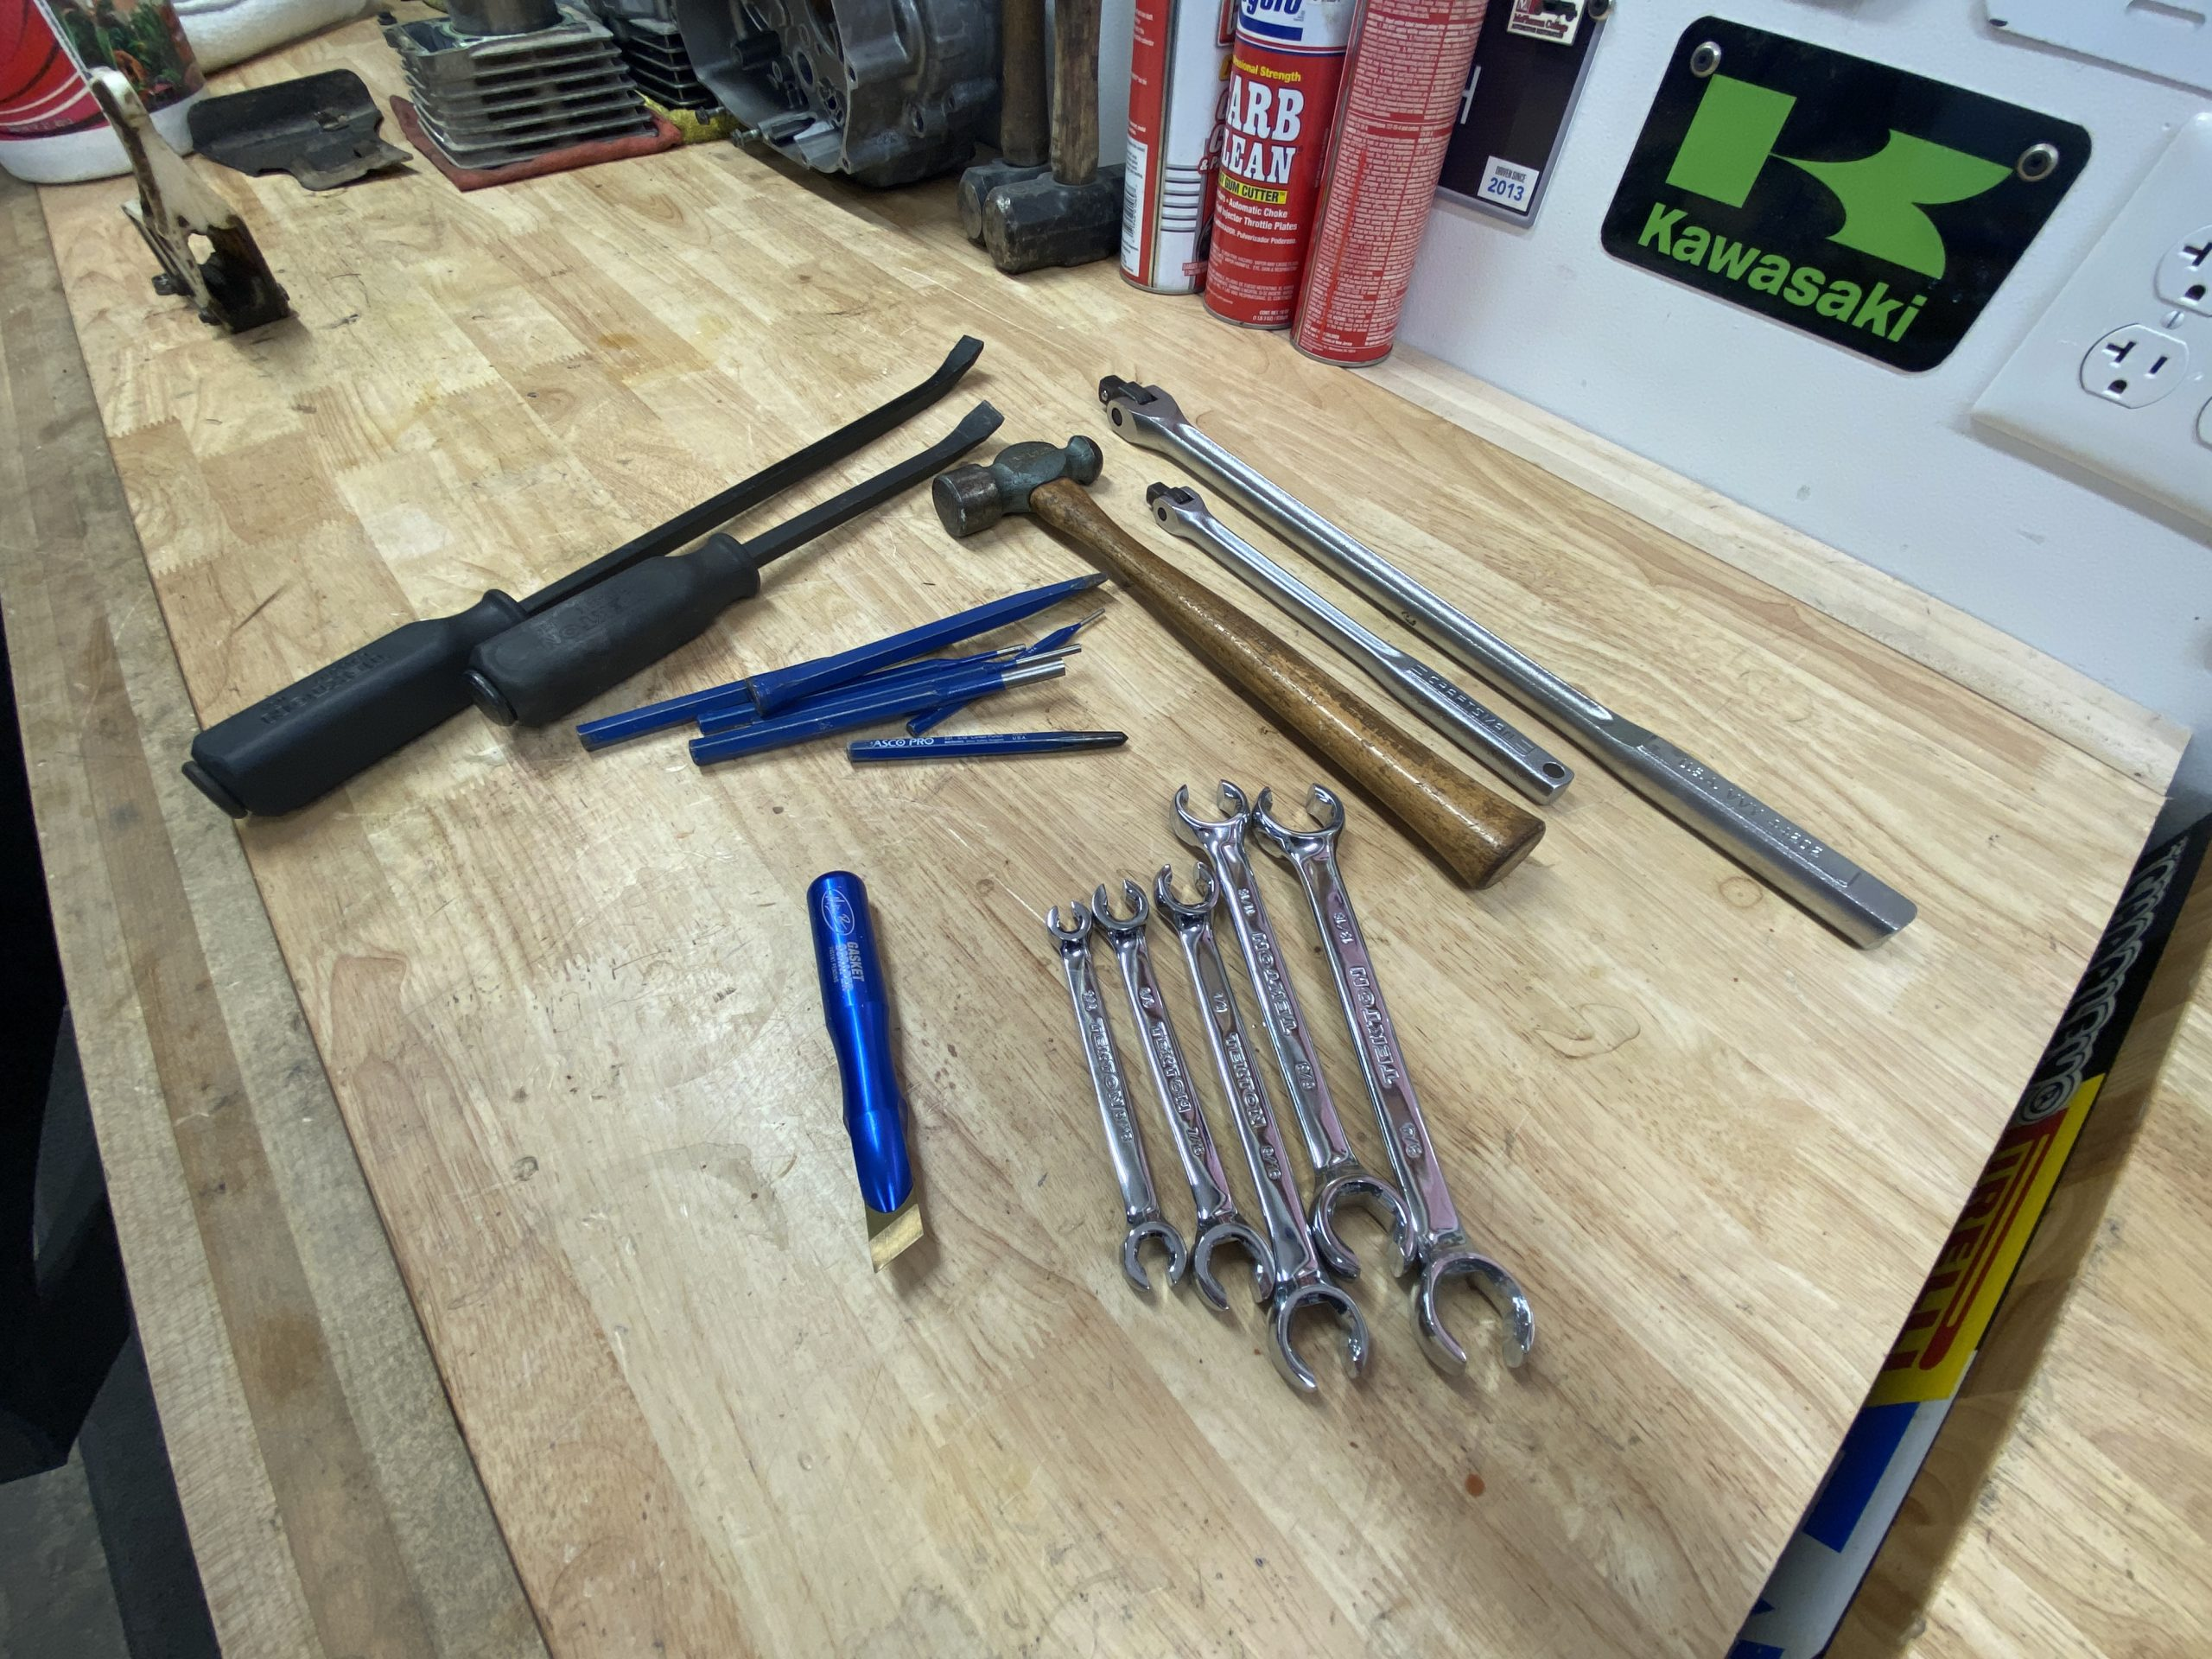 6 essential hand tools for every DIY toolbox